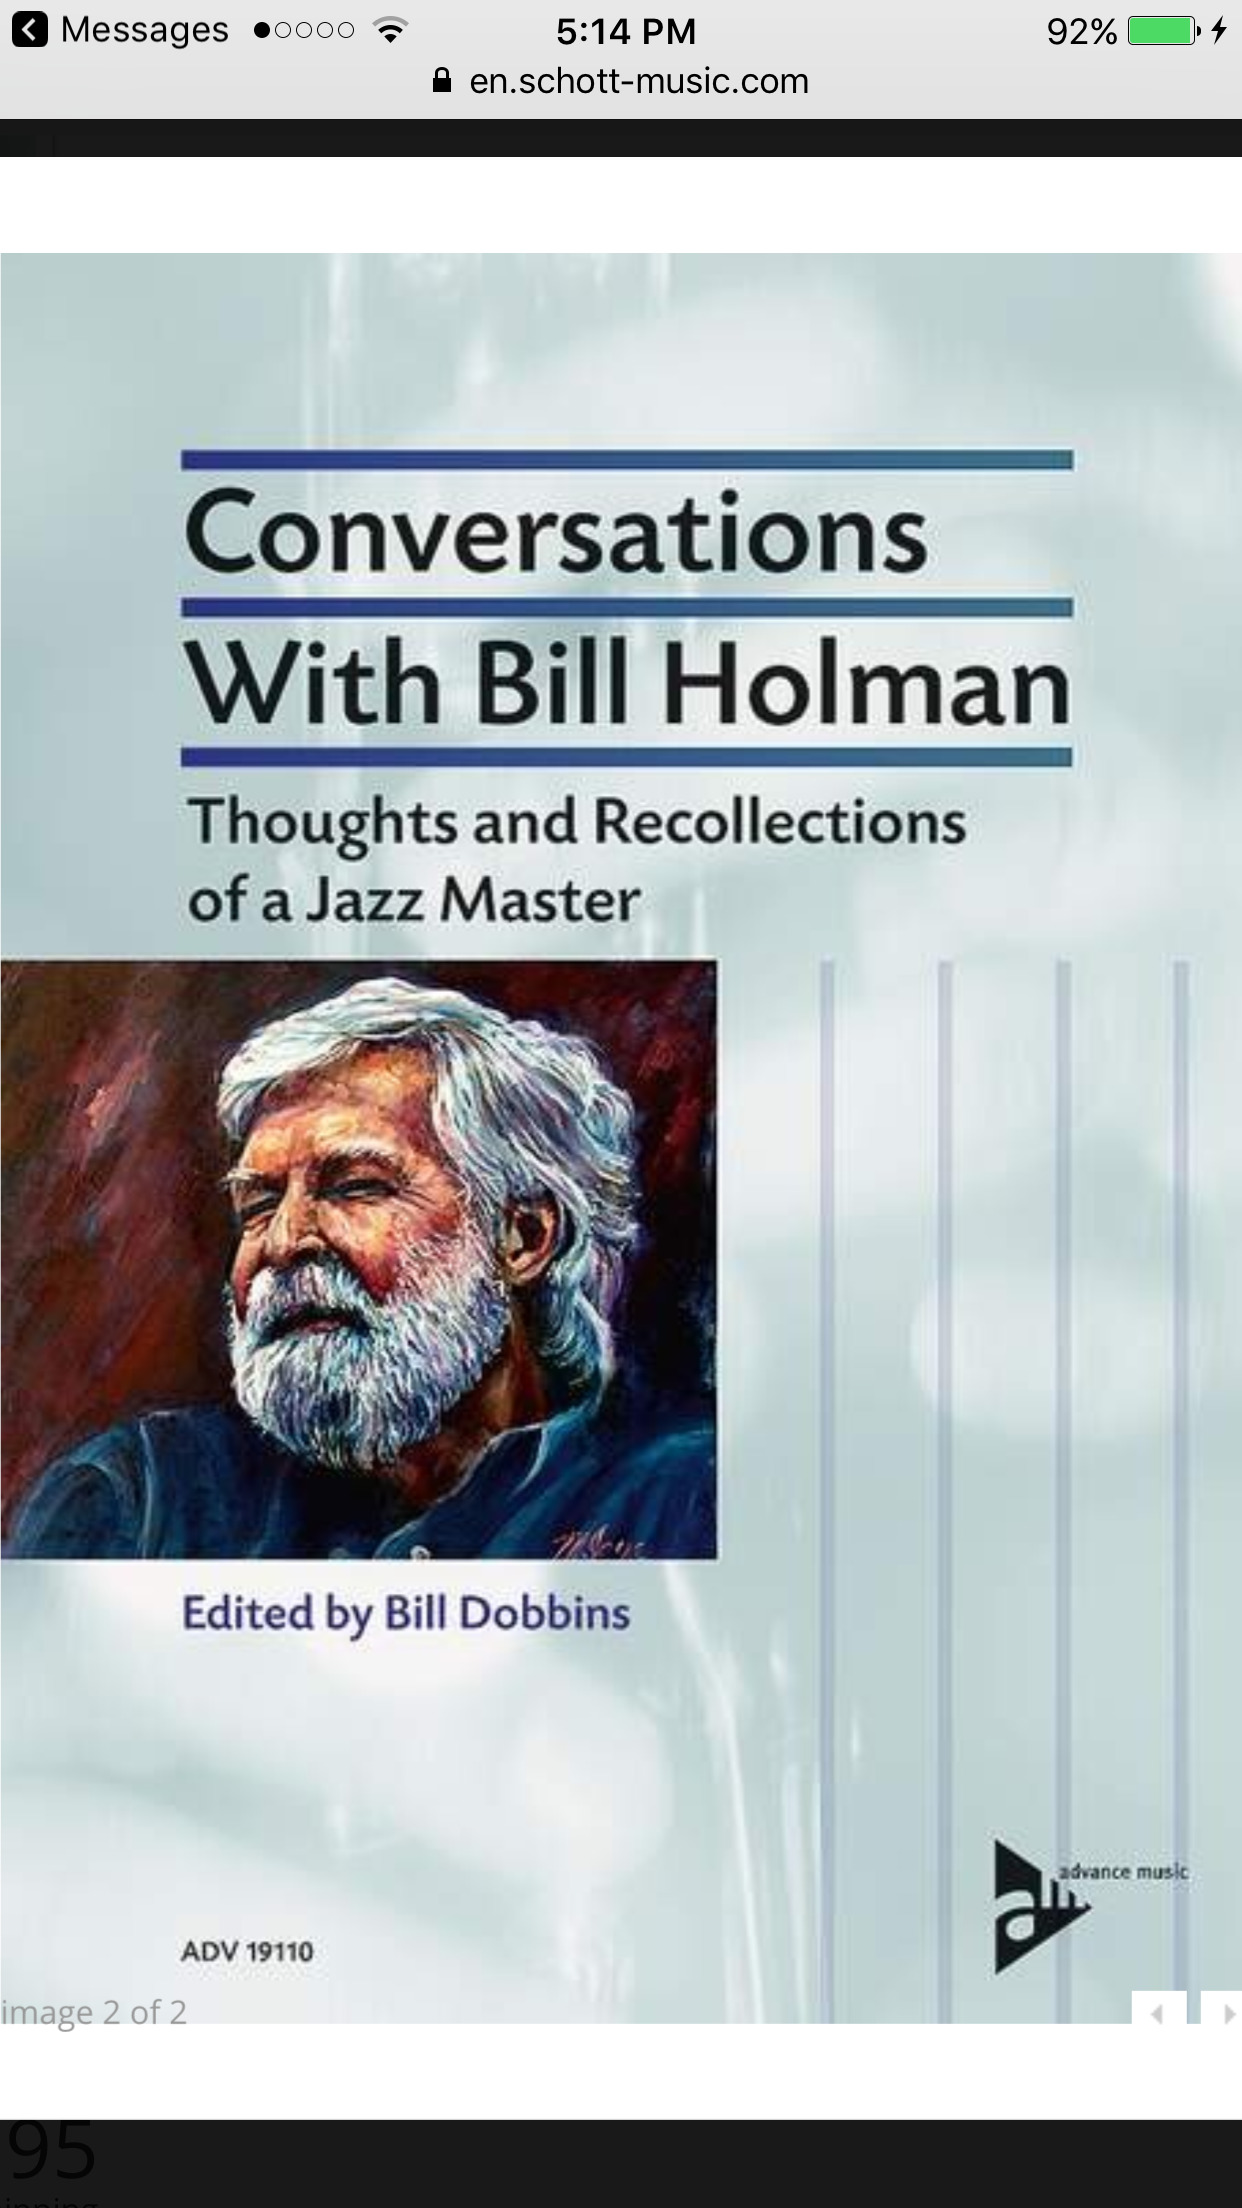 Conversations With Bill Holman, Thoughts and Recollections of a Jazz Master